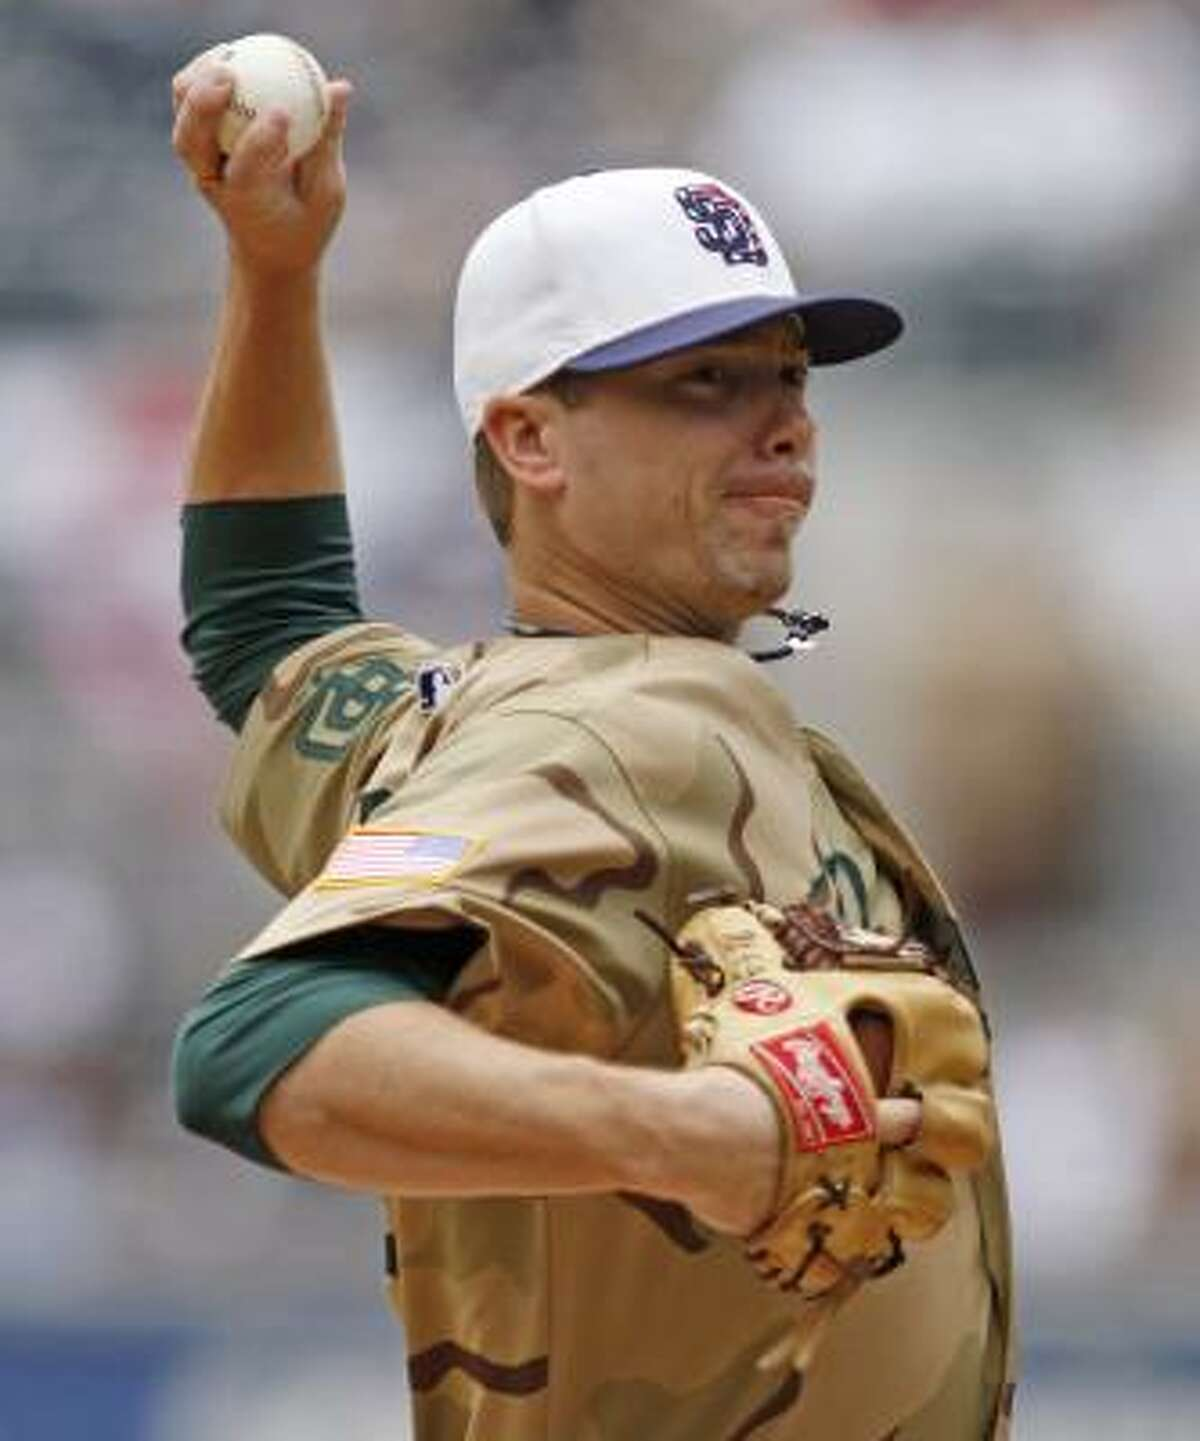 Padres starter Wade LeBlanc held the Astros to one run, Lance Berkman's homer, during 6 2/3 innings.